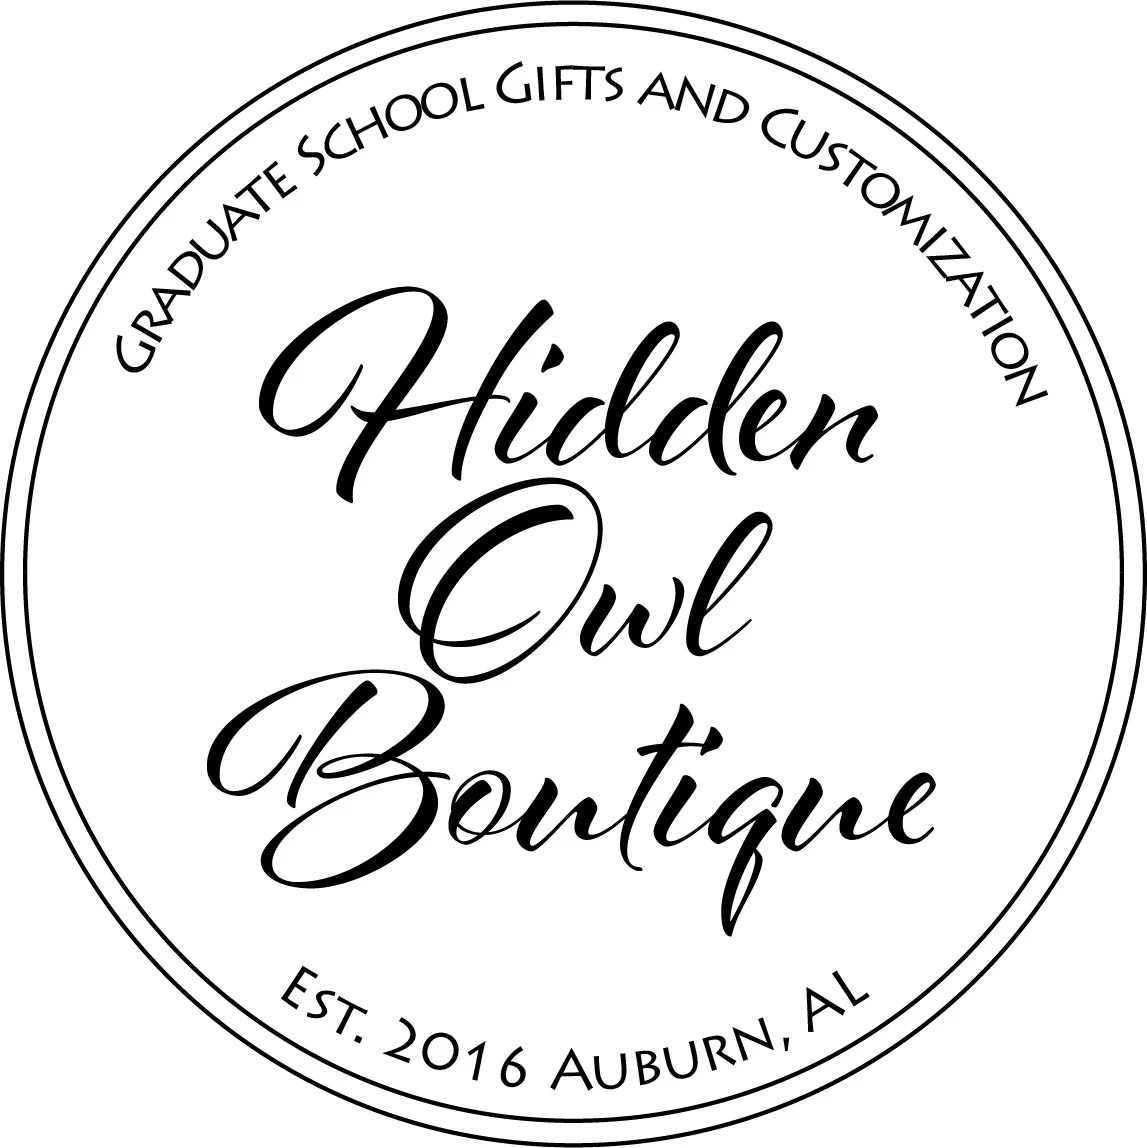 Graduate School Gifts and Customization by HiddenOwlBoutique